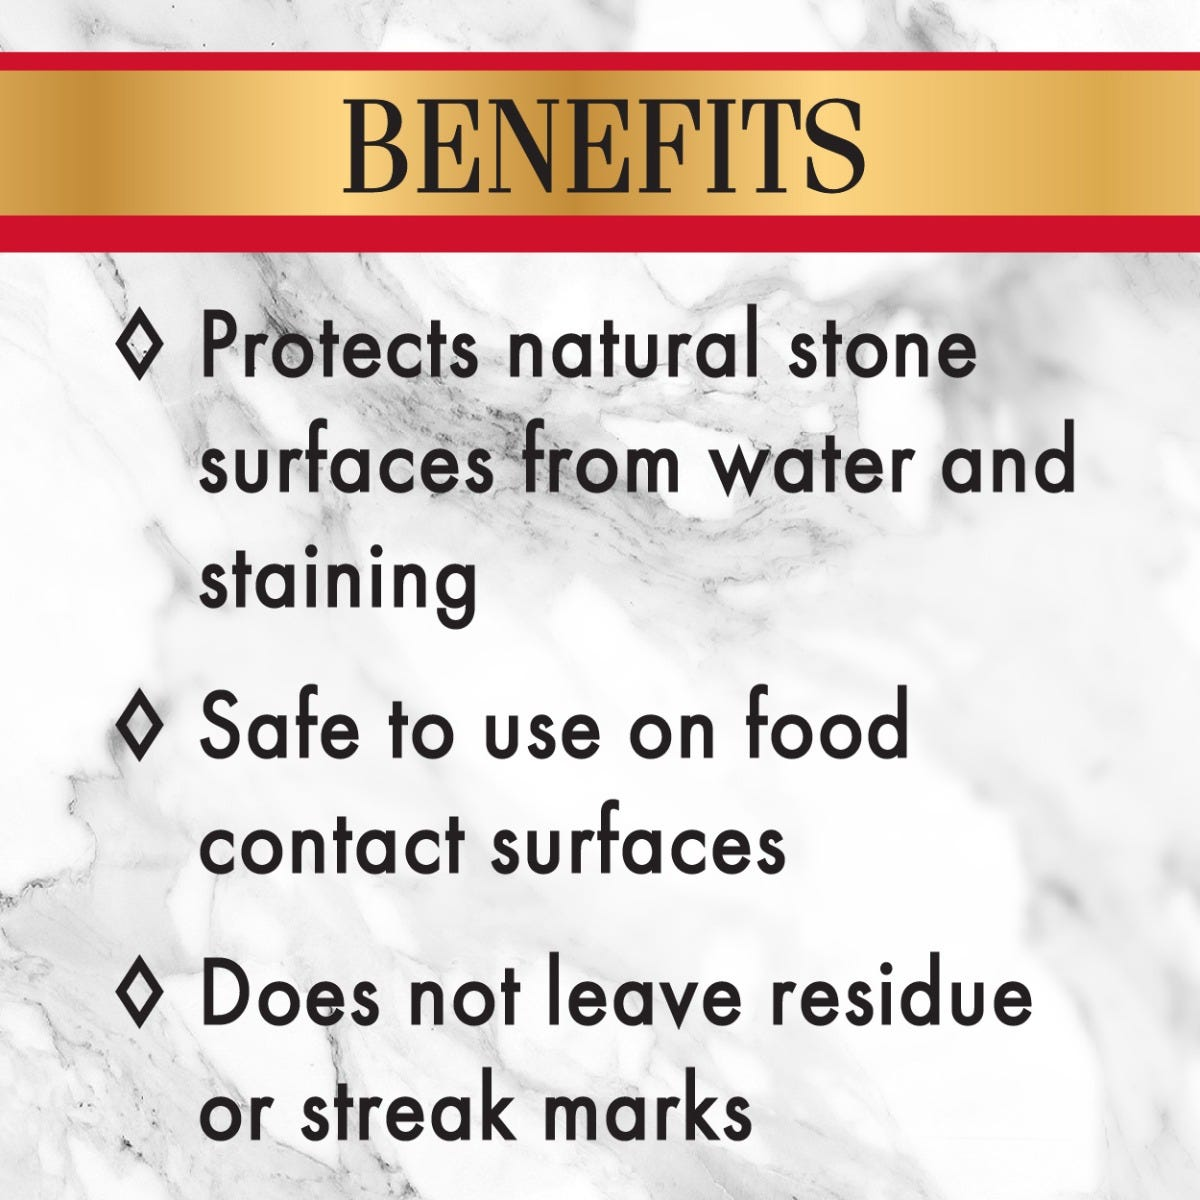 Protects stone from water and staining